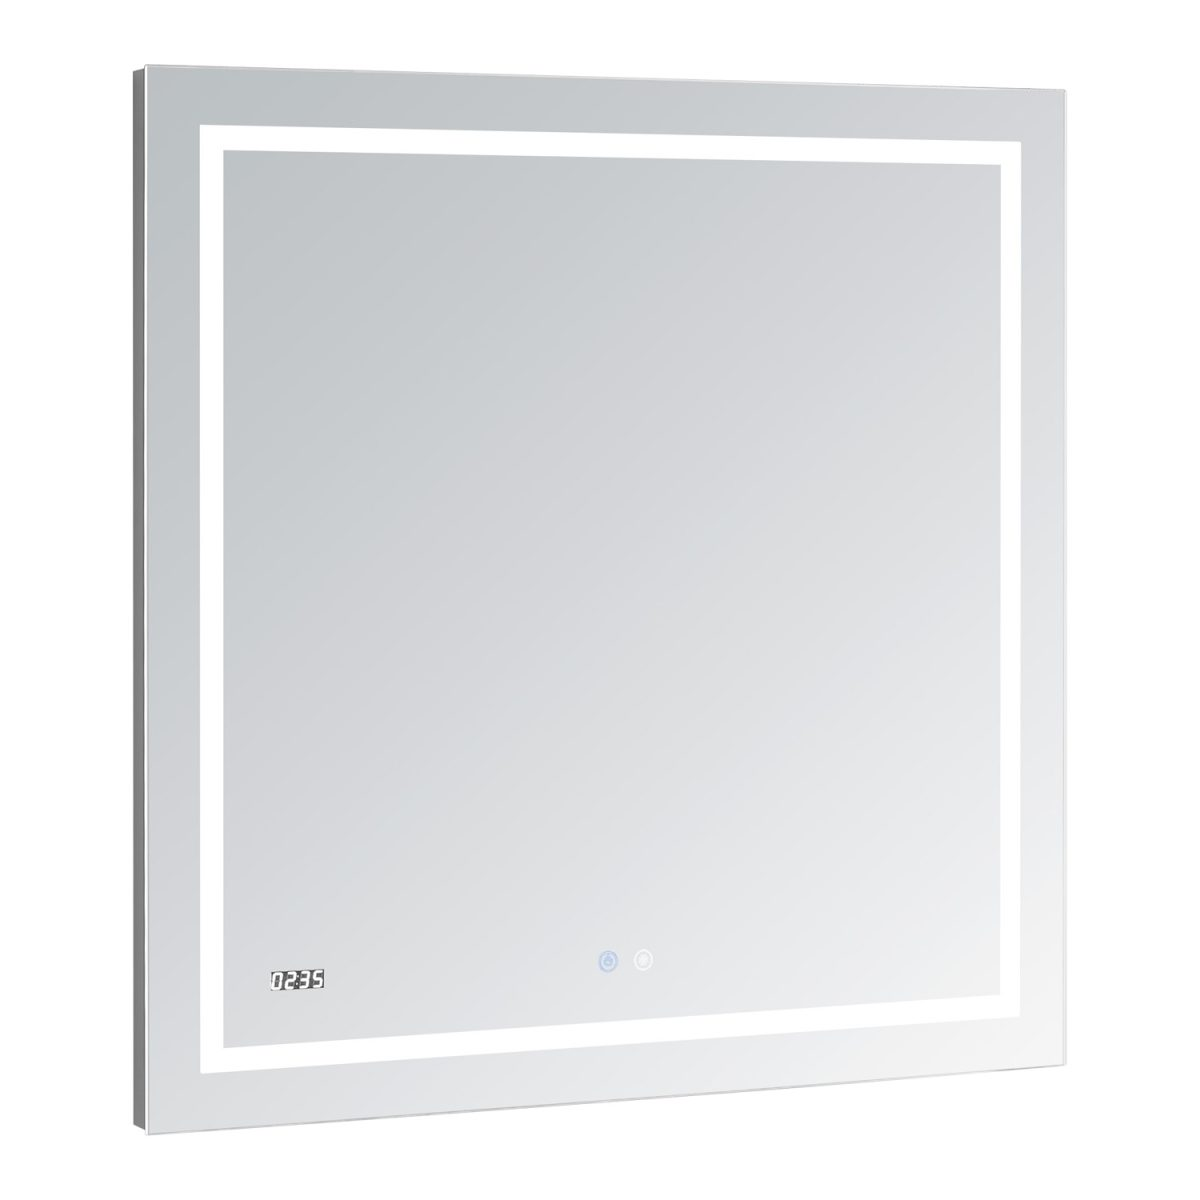 AQUADOM Daytona 30 inches x 30 inches Wall Mounted LED Lighted Silver Mirror for Bathroom